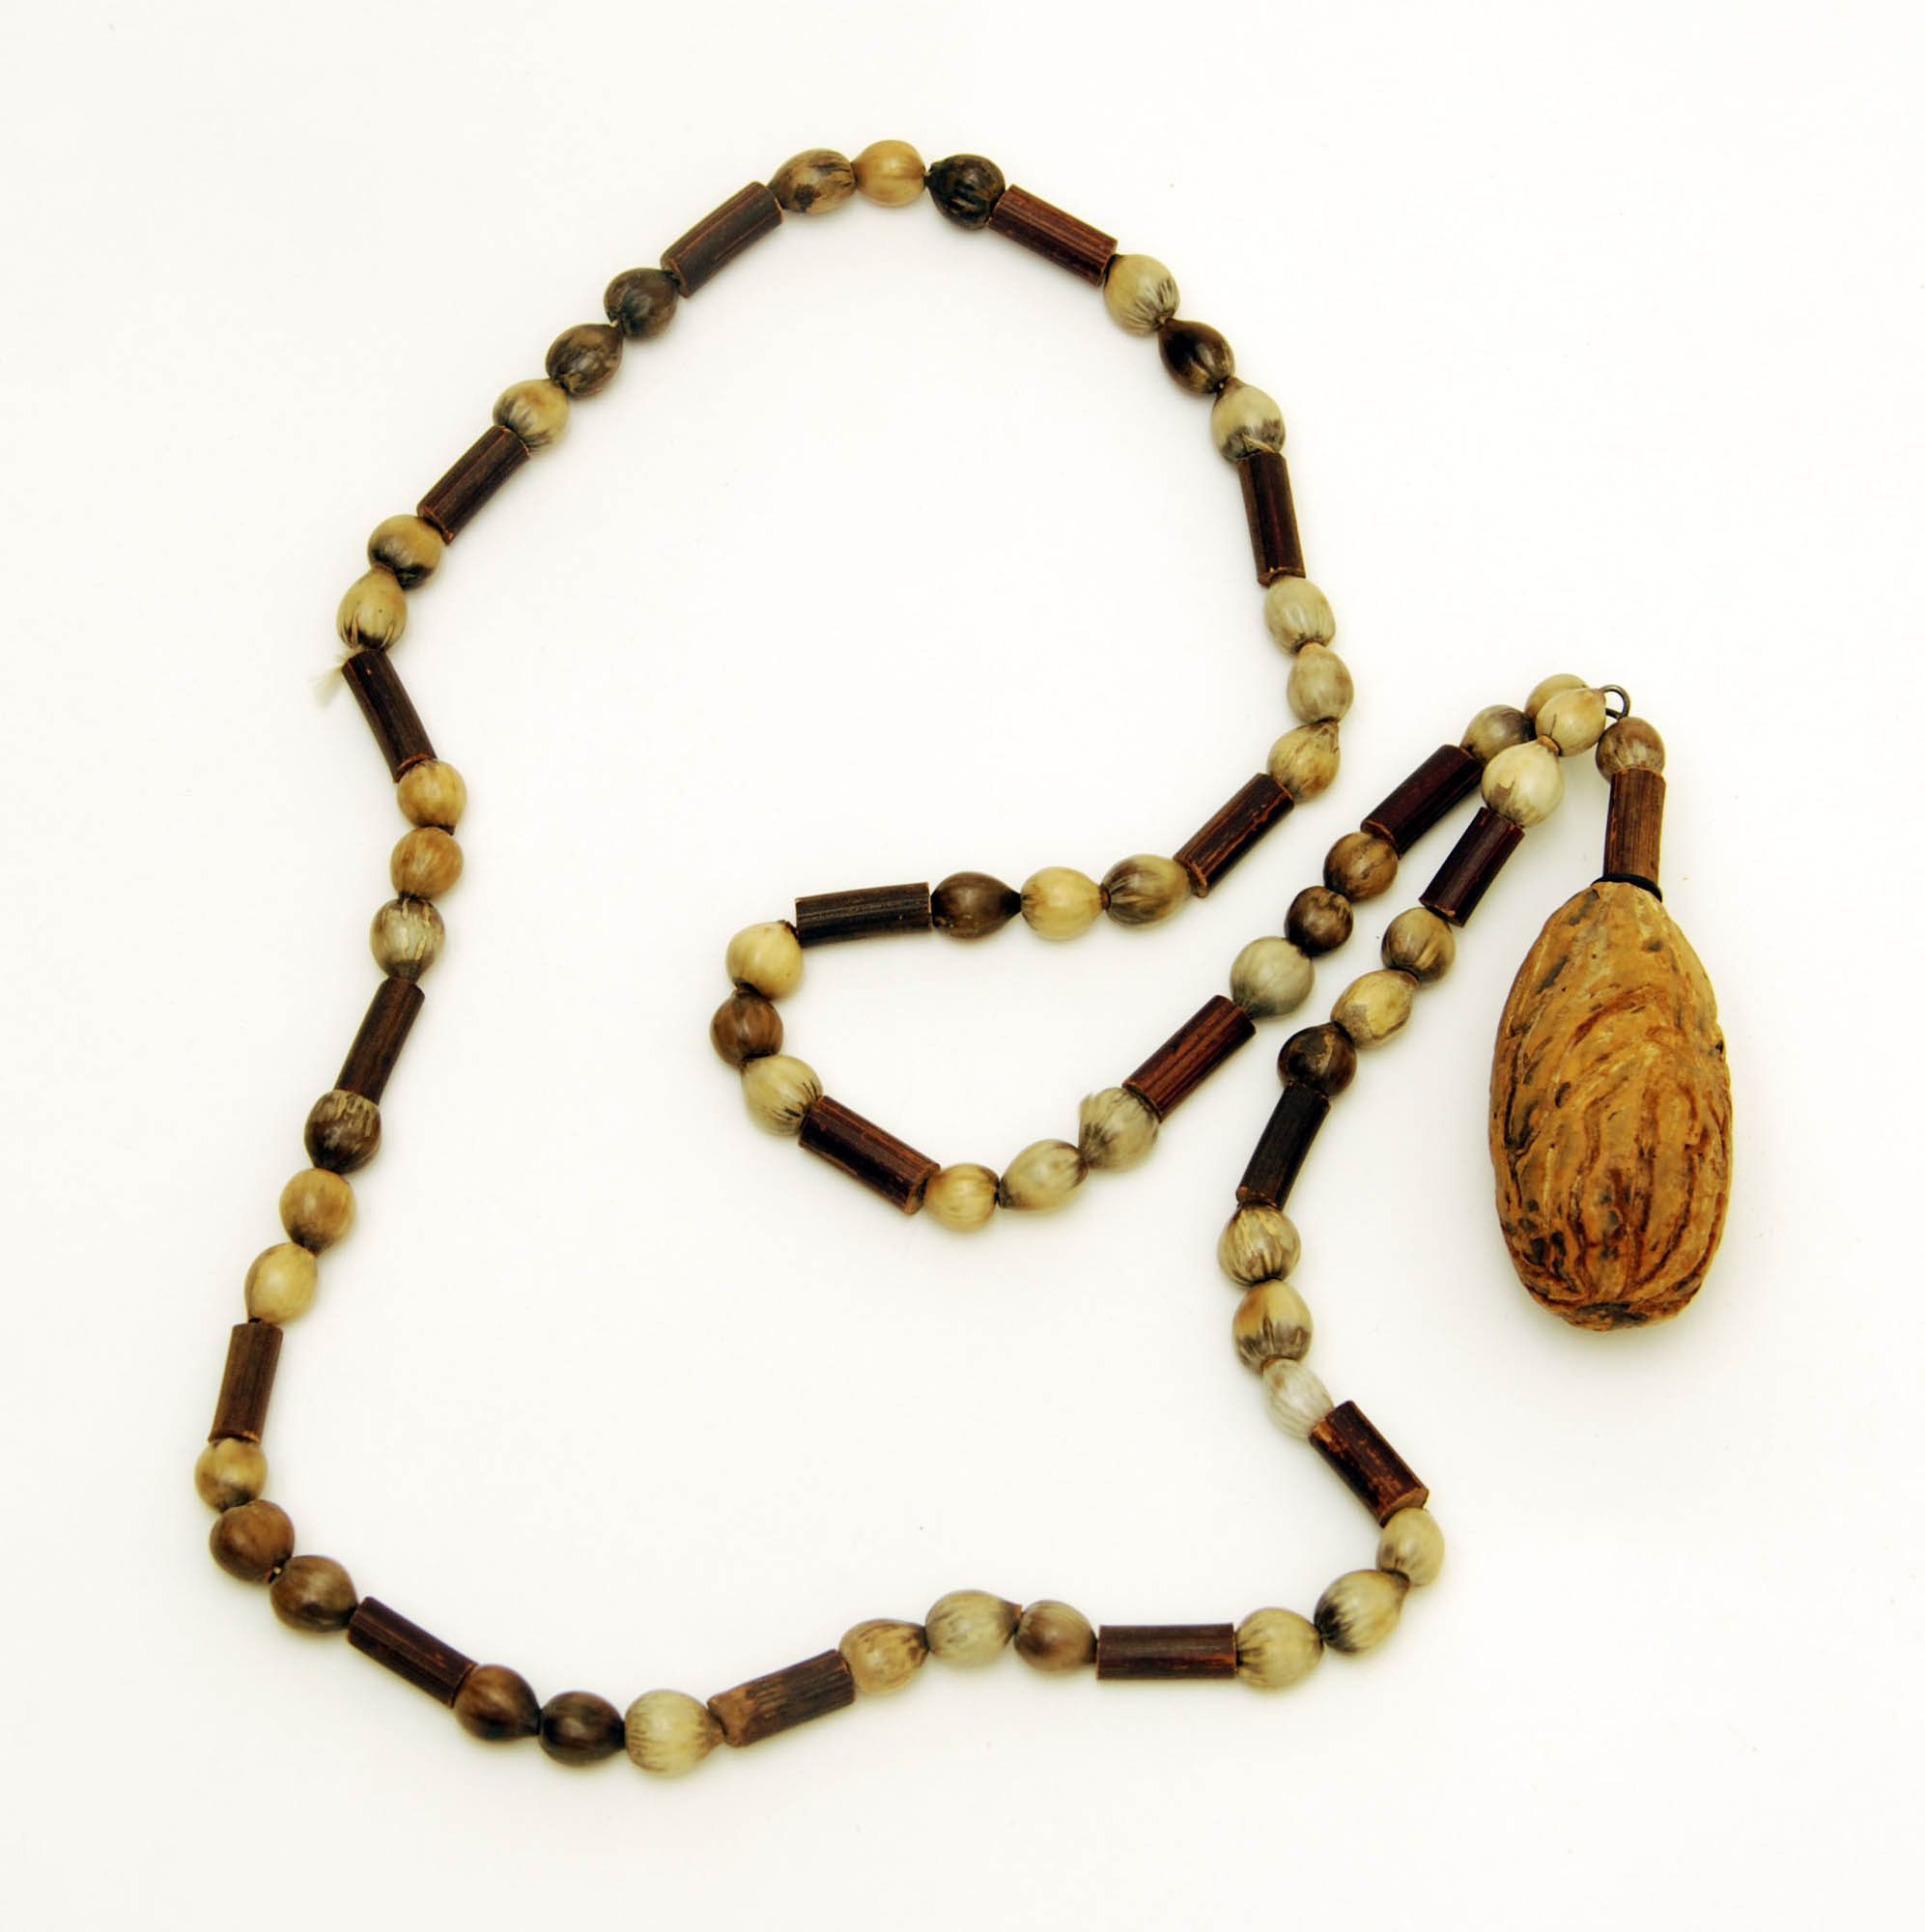 Seed necklace with pendant